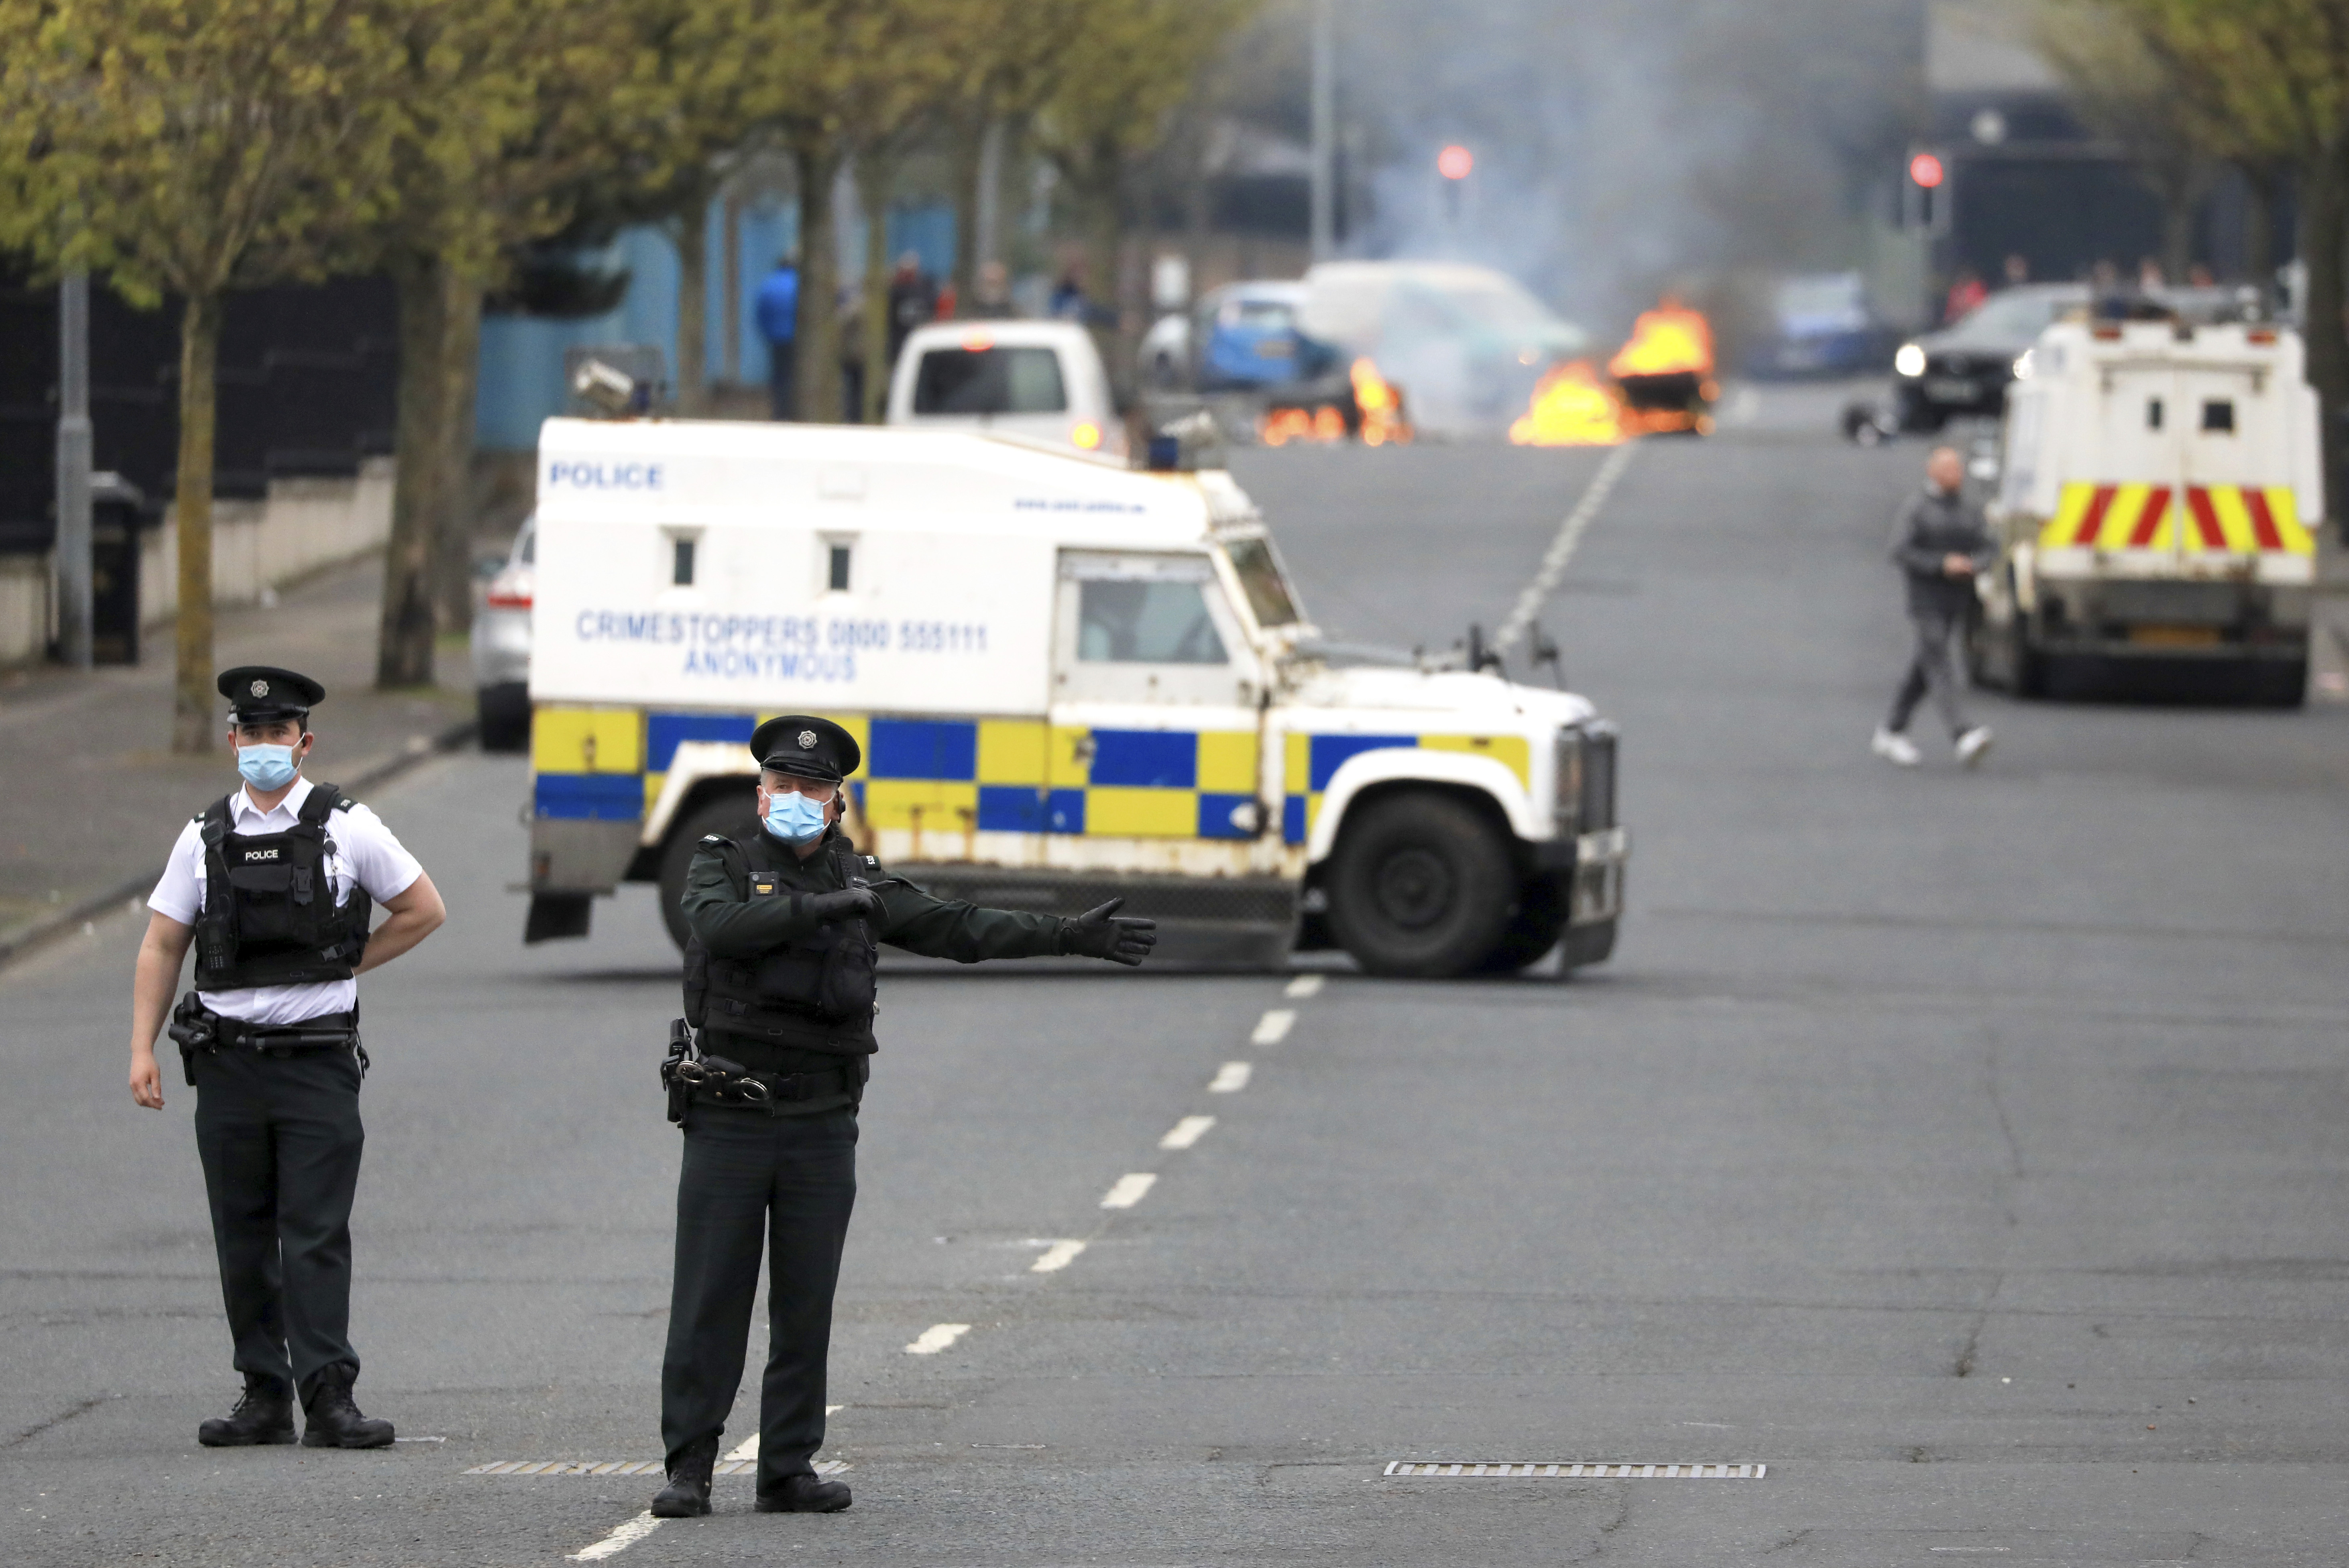 <p>Police divert traffic from a Loyalist protest in Lanark Way in West Belfast, Northern Ireland, Monday, April 19, 2021. Loyalist protesting on the Brexit agreement with the Northern Ireland Protocol have resumed across various locations in the British province. (AP Photo/Peter Morrison)</p>